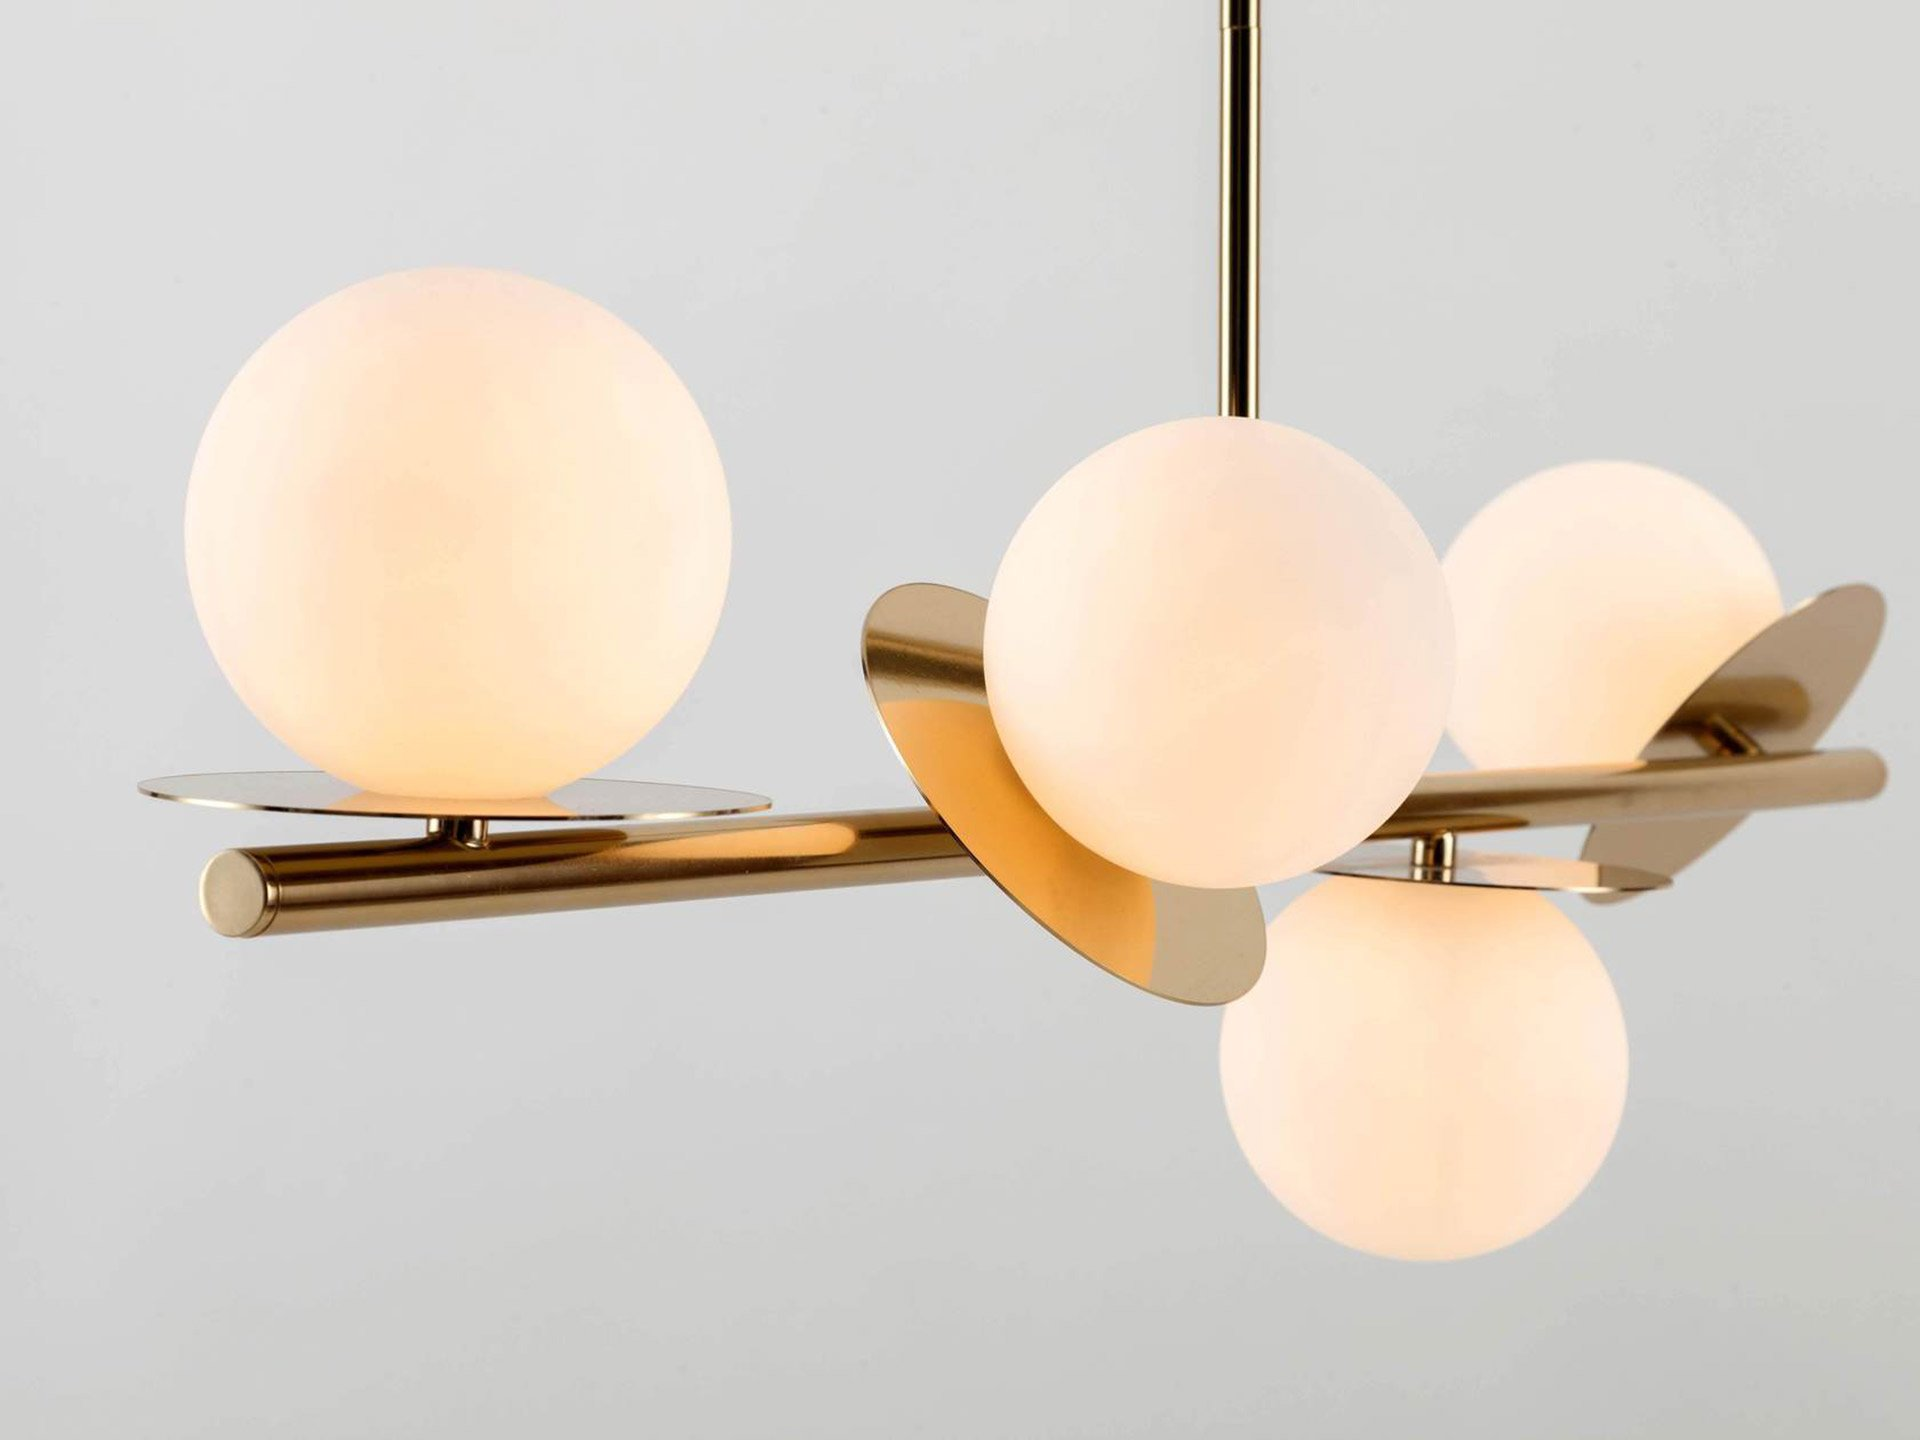 The Brass Opal Disc Ceiling Light from HouseOf.com